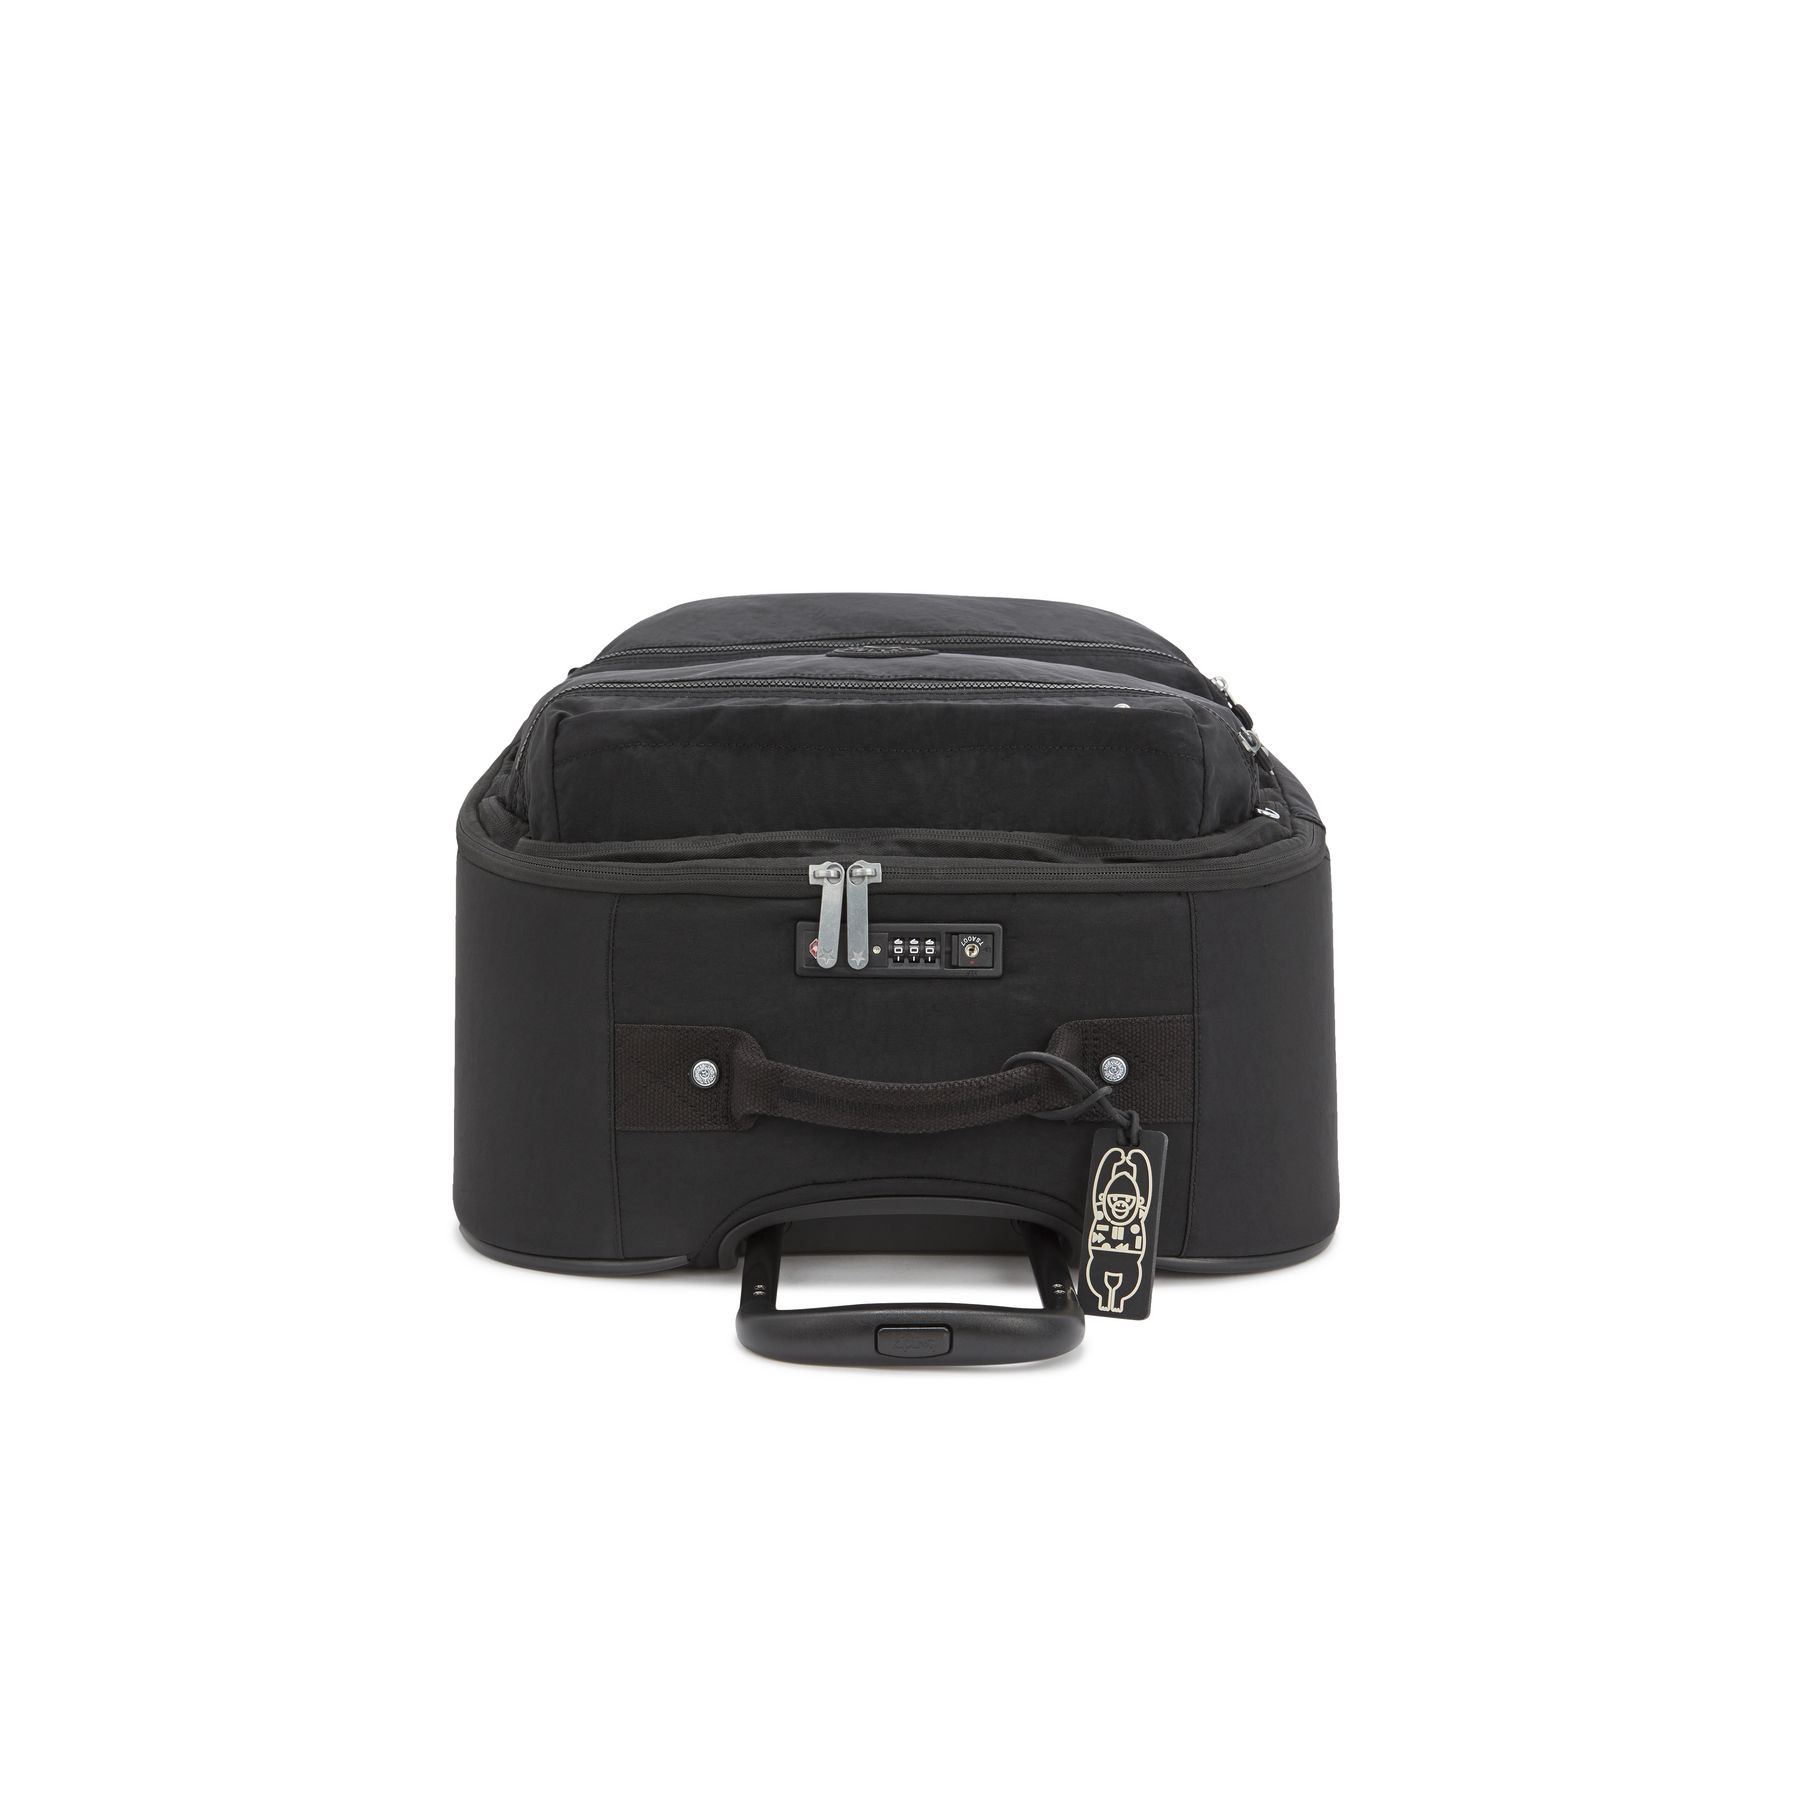 CITY SPINNER L LUGGAGE by Kipling